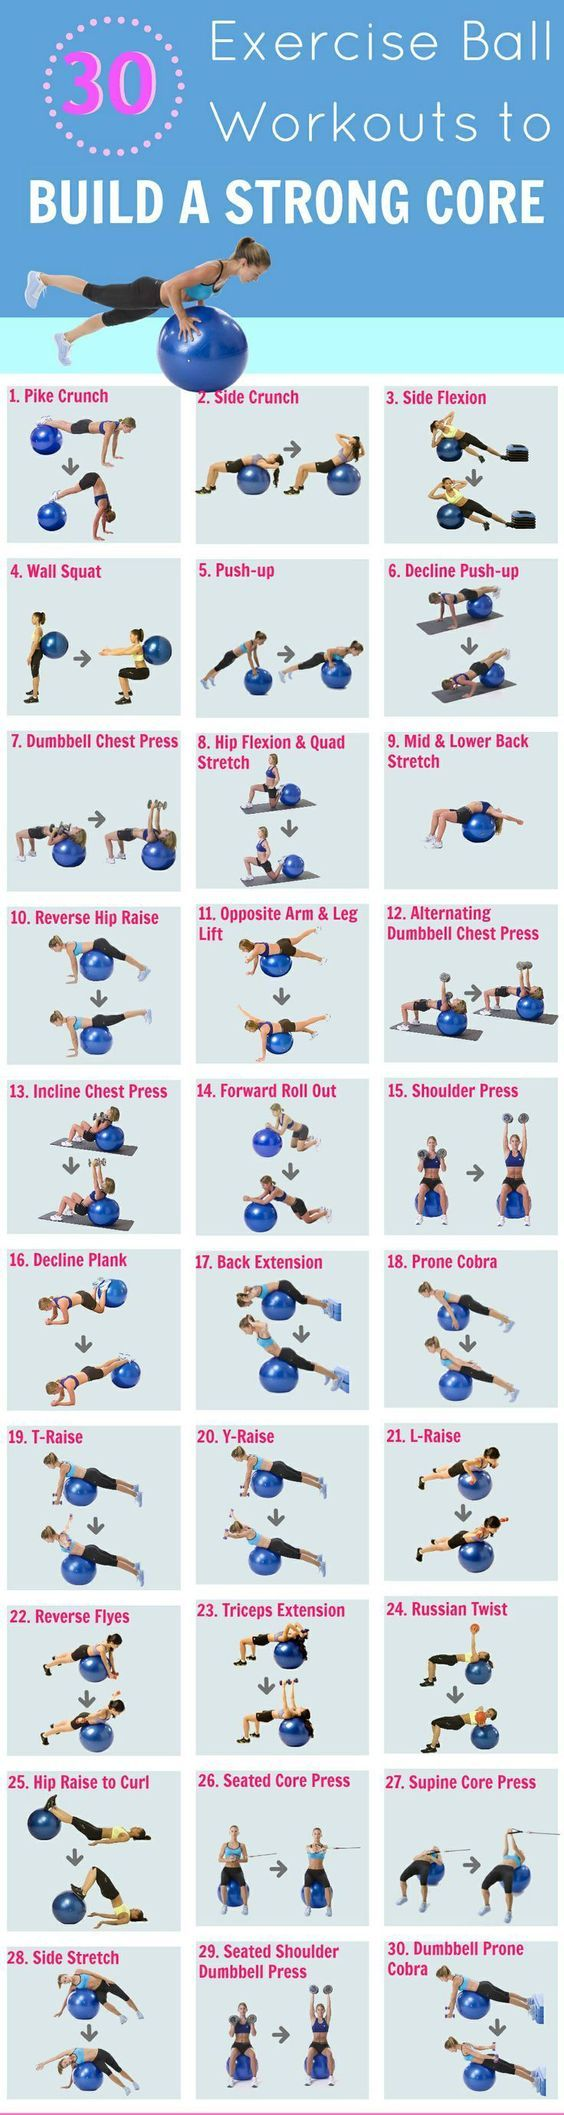 30 exercise ball workouts: A fitness ball is a must have for every home gym workout as they make exercises such as the crunch, butt bridge, push up, prone cobra more fun and challenging. A list of 30 stability ball exercises to get you started. Invite me to your fitness boards ! thanks ! Home Gyms